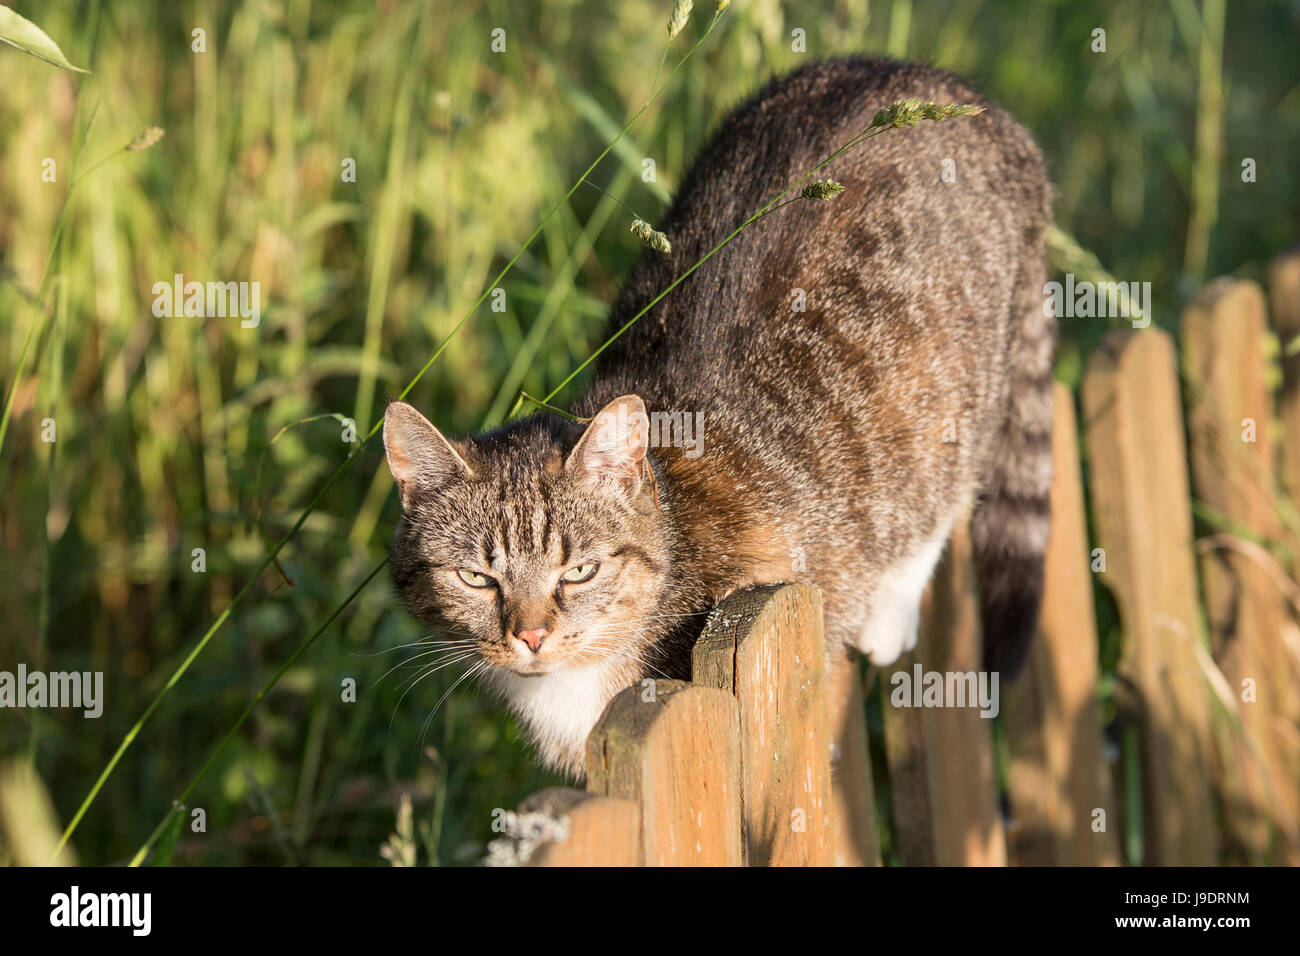 A cat walking on a fence, summer golden hour light, polish coutryside, pure joy and nature, real contact with animals during holidays. Stock Photo